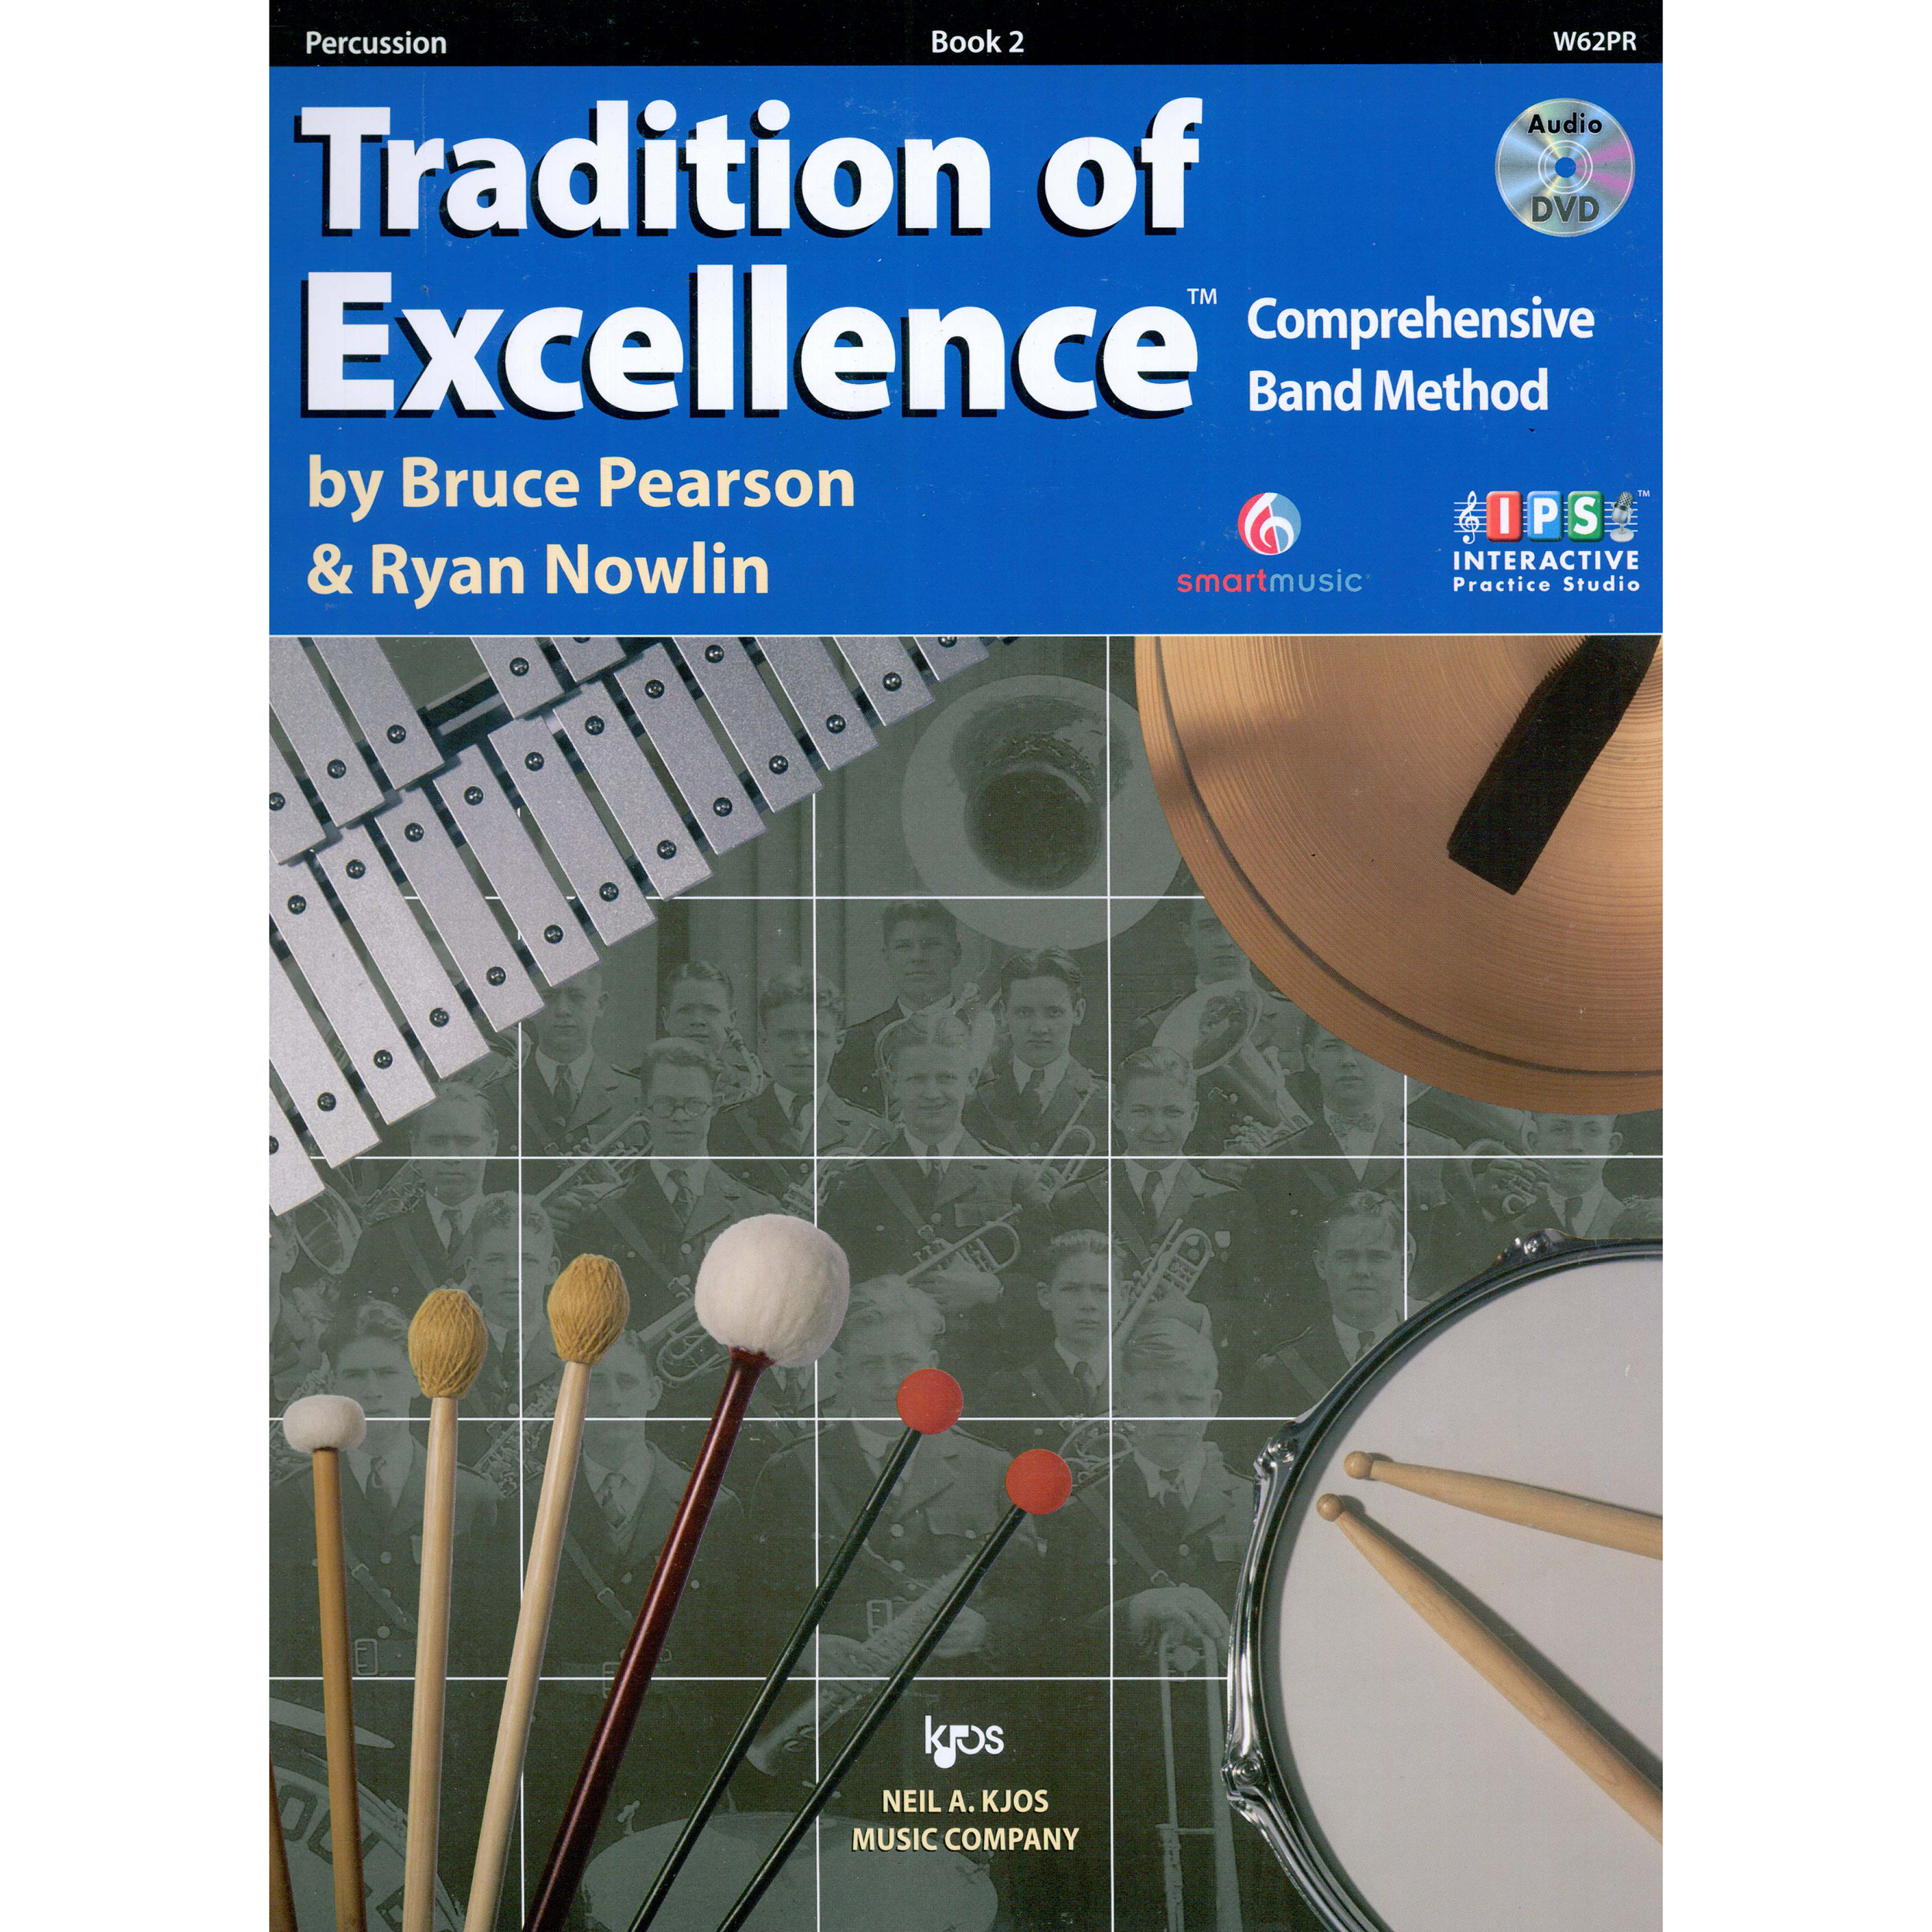 Tradition of Excellence (Book 2) by Bruce Pearson and Ryan Nowlin